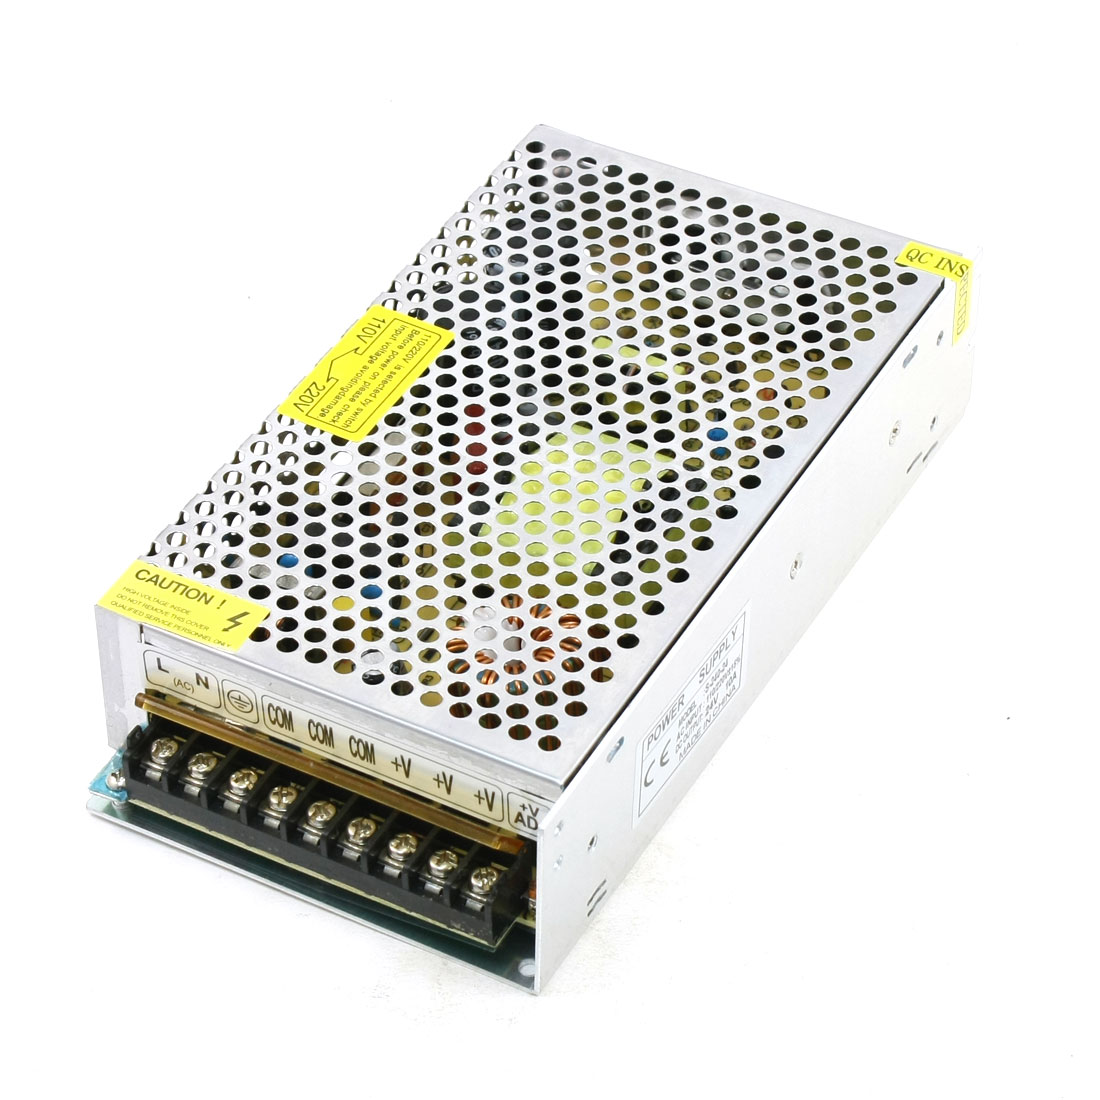 S-240-24 Aluminum Housing Output DC 24V 10A 240W LED Power Supply